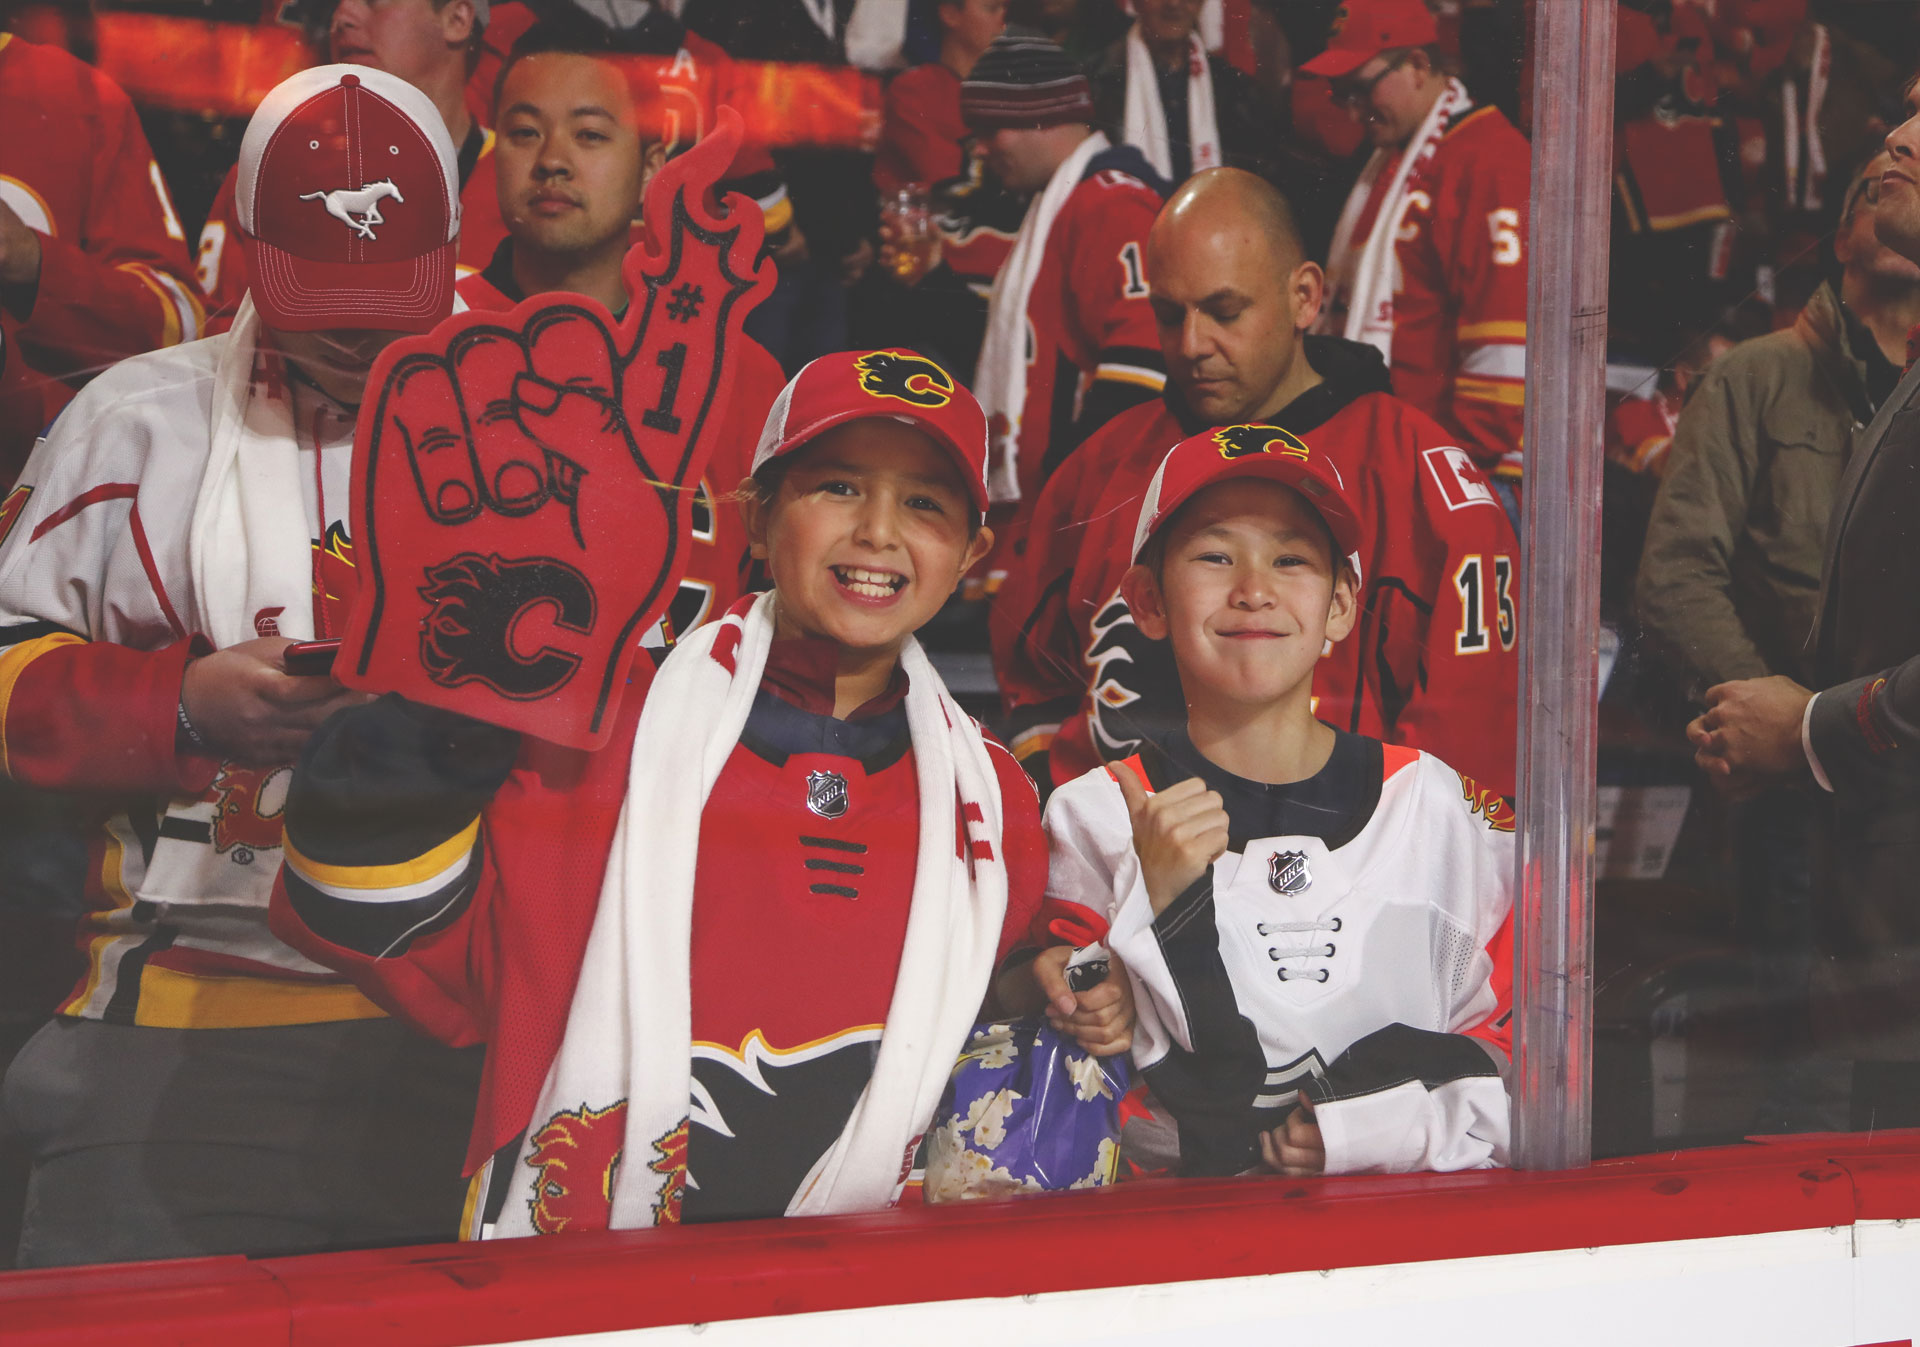 Calgary Flames games at the Scotiabank Saddledome are a family friendly experience.